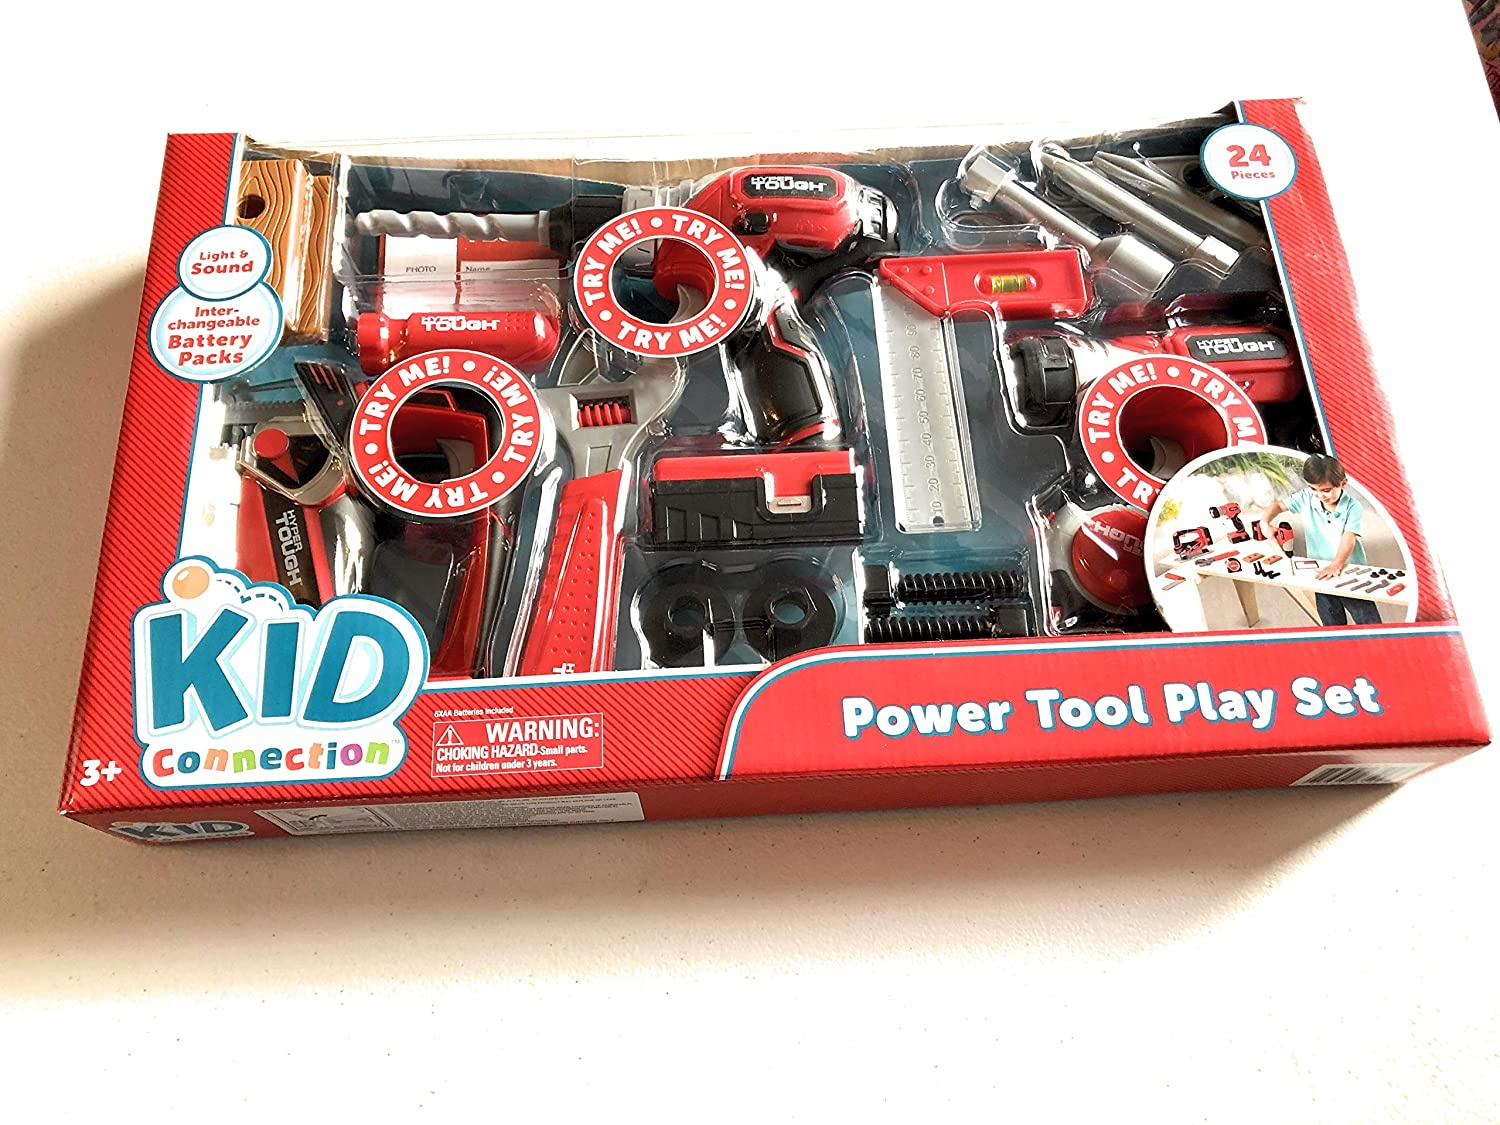 Kids Connection 20 Piece Power Tools Play Set